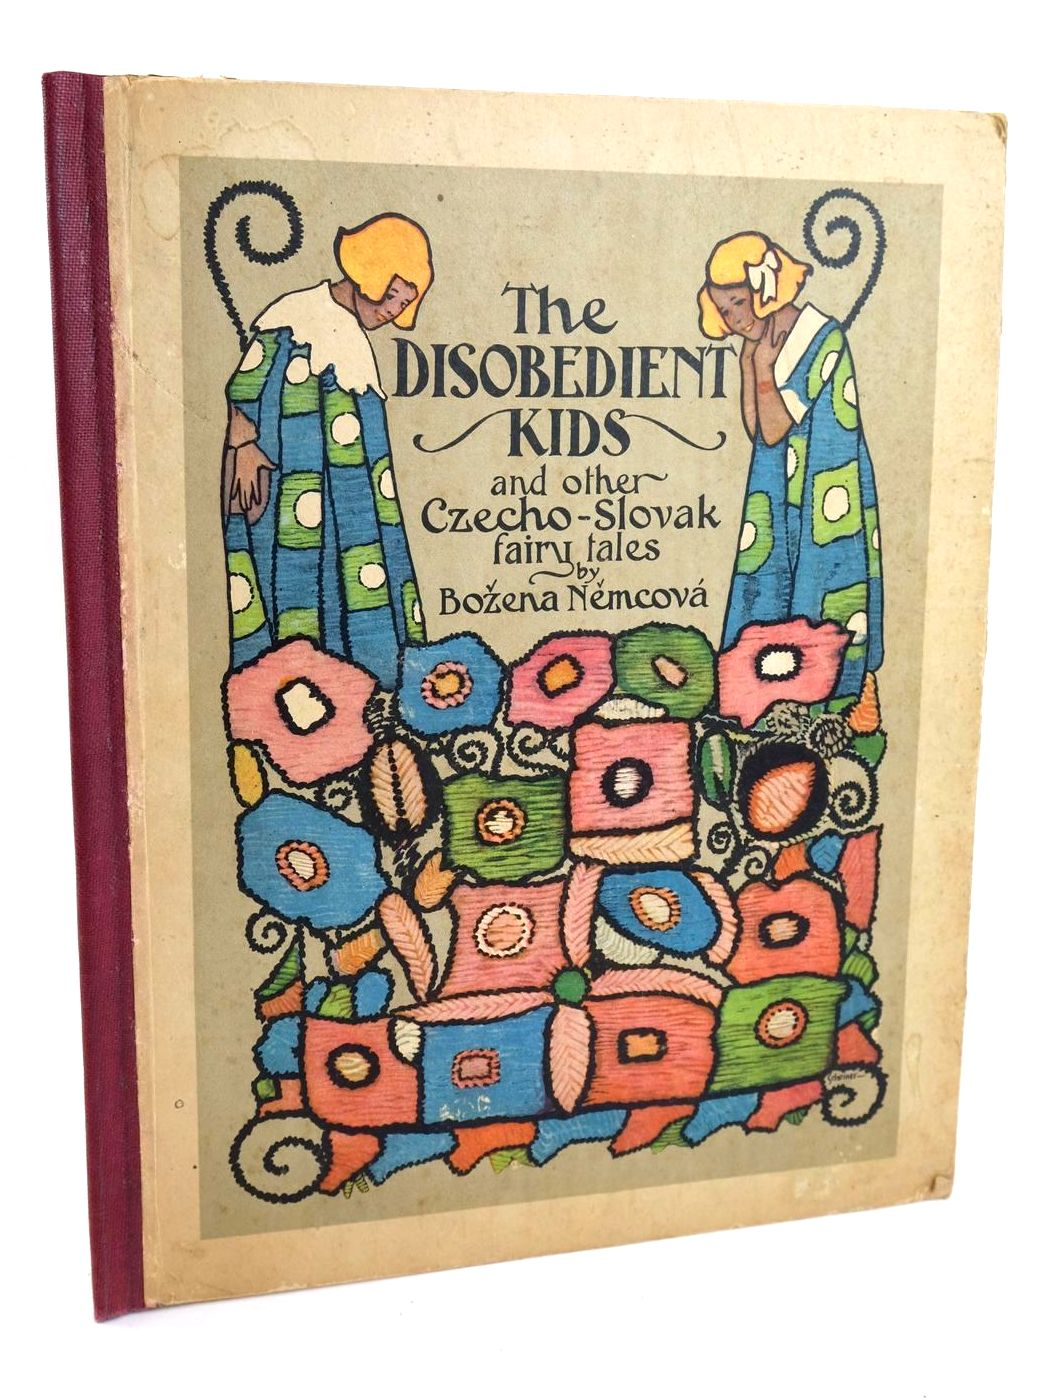 Photo of THE DISOBEDIENT KIDS AND OTHER CZECHO-SLOVAK FAIRY TALES written by Nemcova, Bozena Tolman, William Howe Smetanka, V. illustrated by Scheiner, Artus published by B. Koci (STOCK CODE: 1319265)  for sale by Stella & Rose's Books